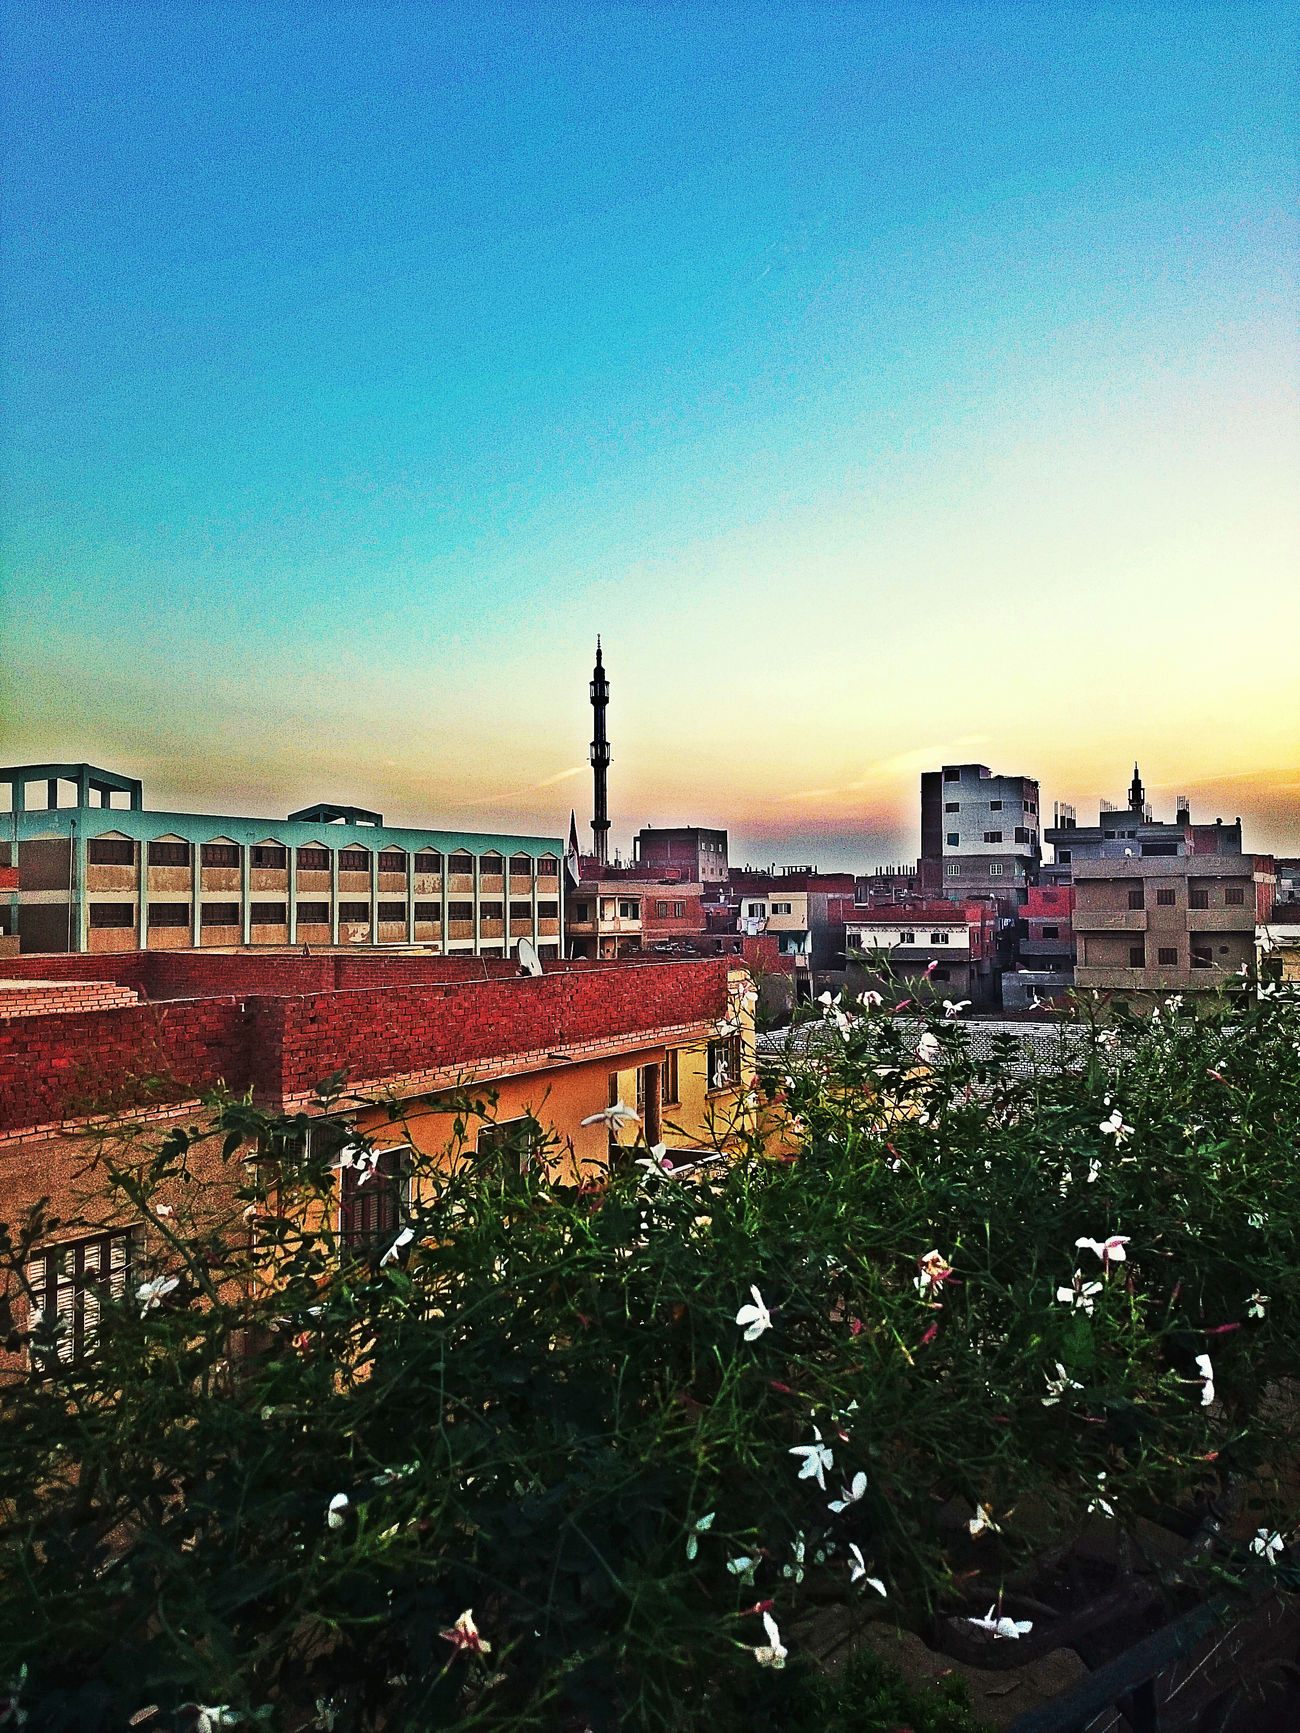 Beautiful Blue Sky Buildings Buildings And Sky Colorful Colour Colourful Sky Egypt Egyptian Flower Flowers Flowers, Nature And Beauty Green Homes Horizon Jasmine Flower Jasmine Flowers Mosque Natural Natural Beauty Nature Plant Plants Plants And Flowers Sky